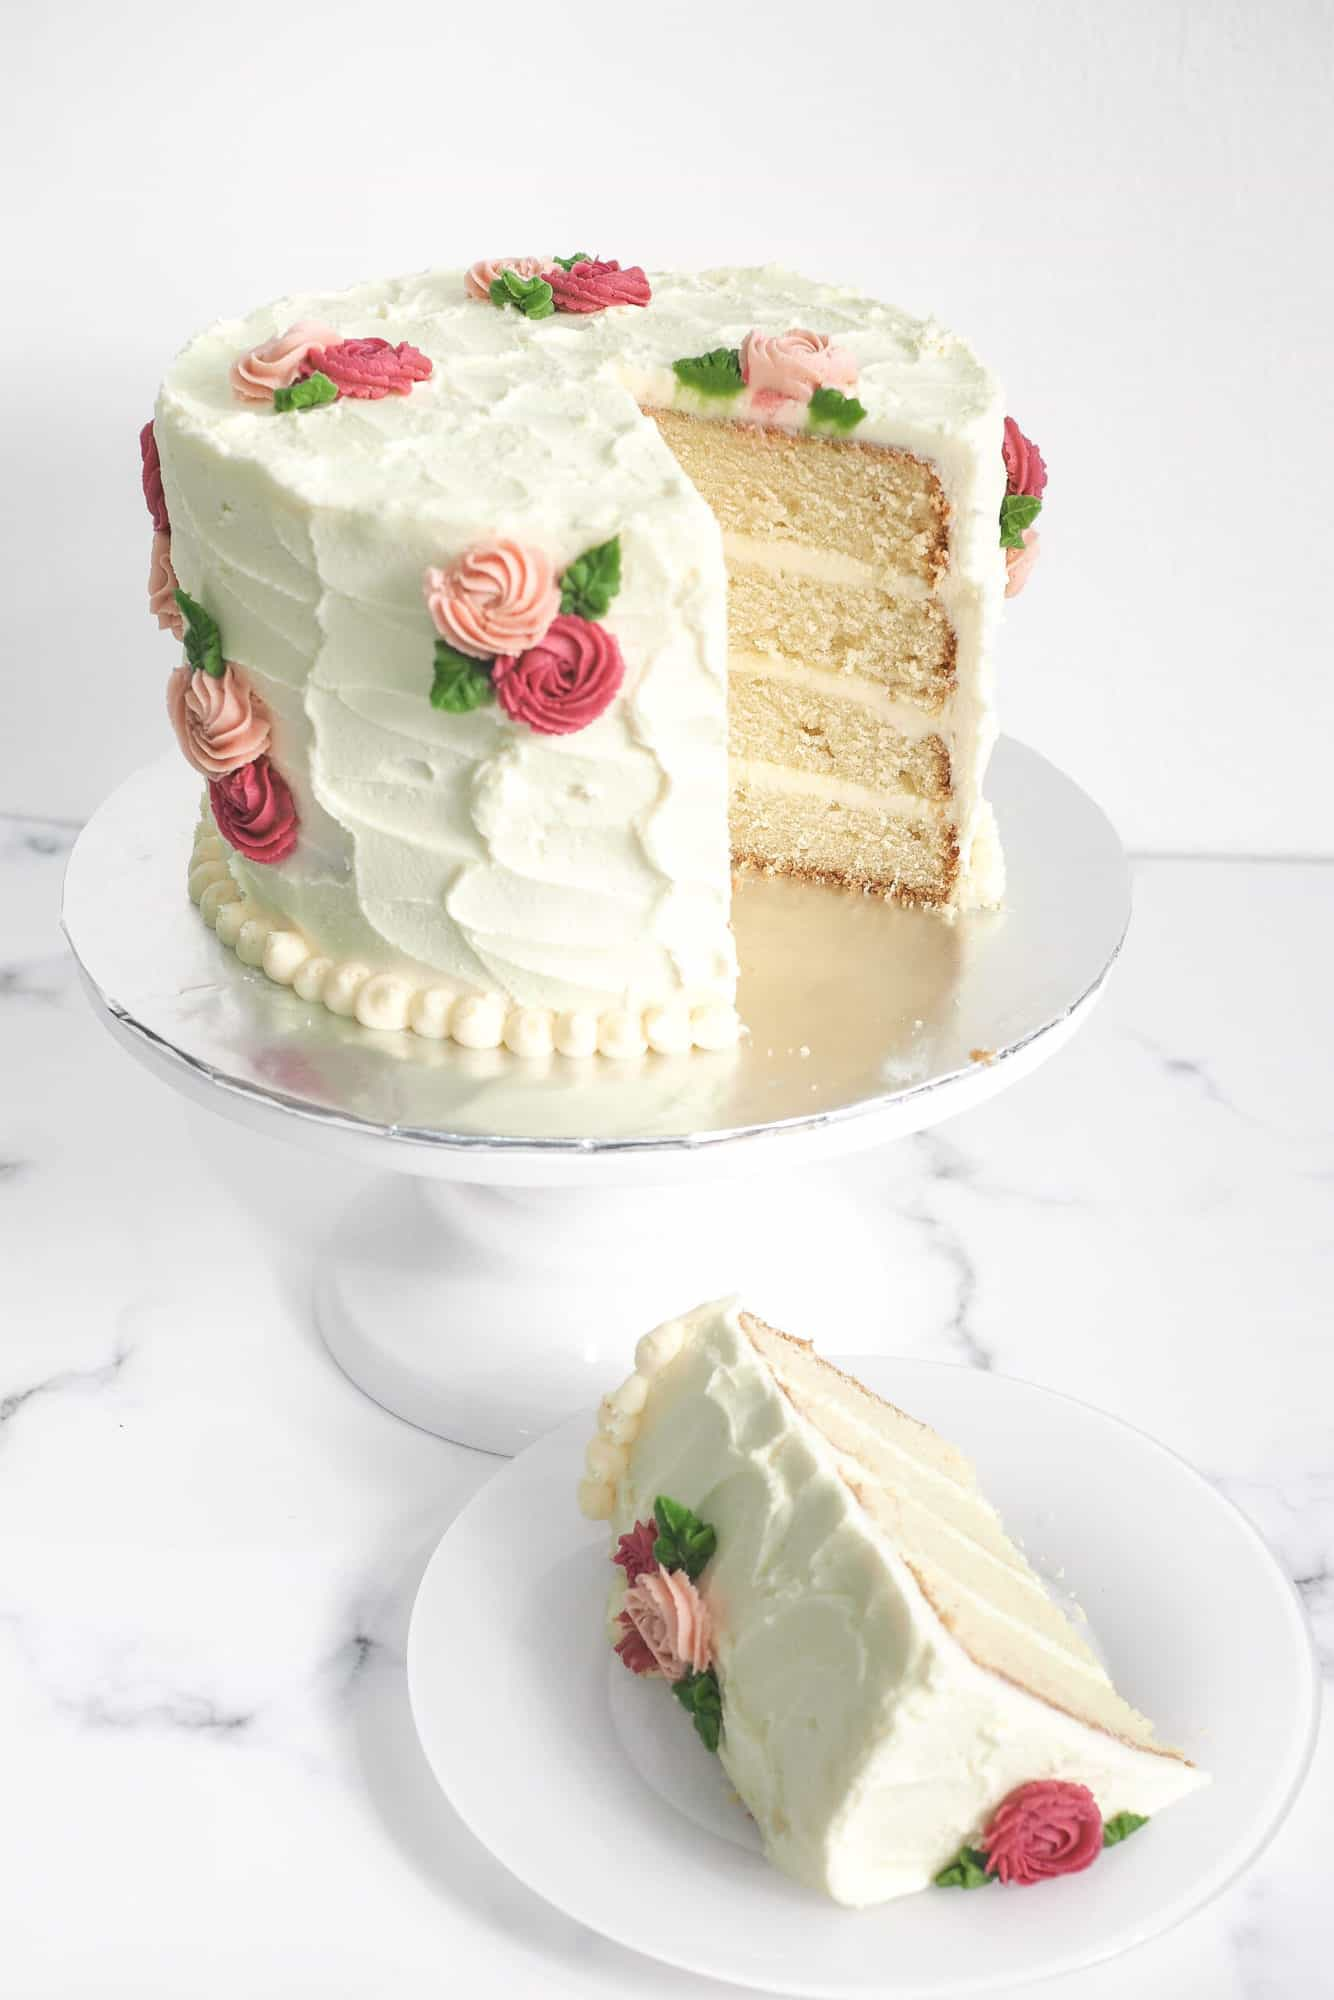 A round cake covered in white buttercream with pink and maroon rosettes and green leaves. A slice of the cake is cut out onto a white plate.